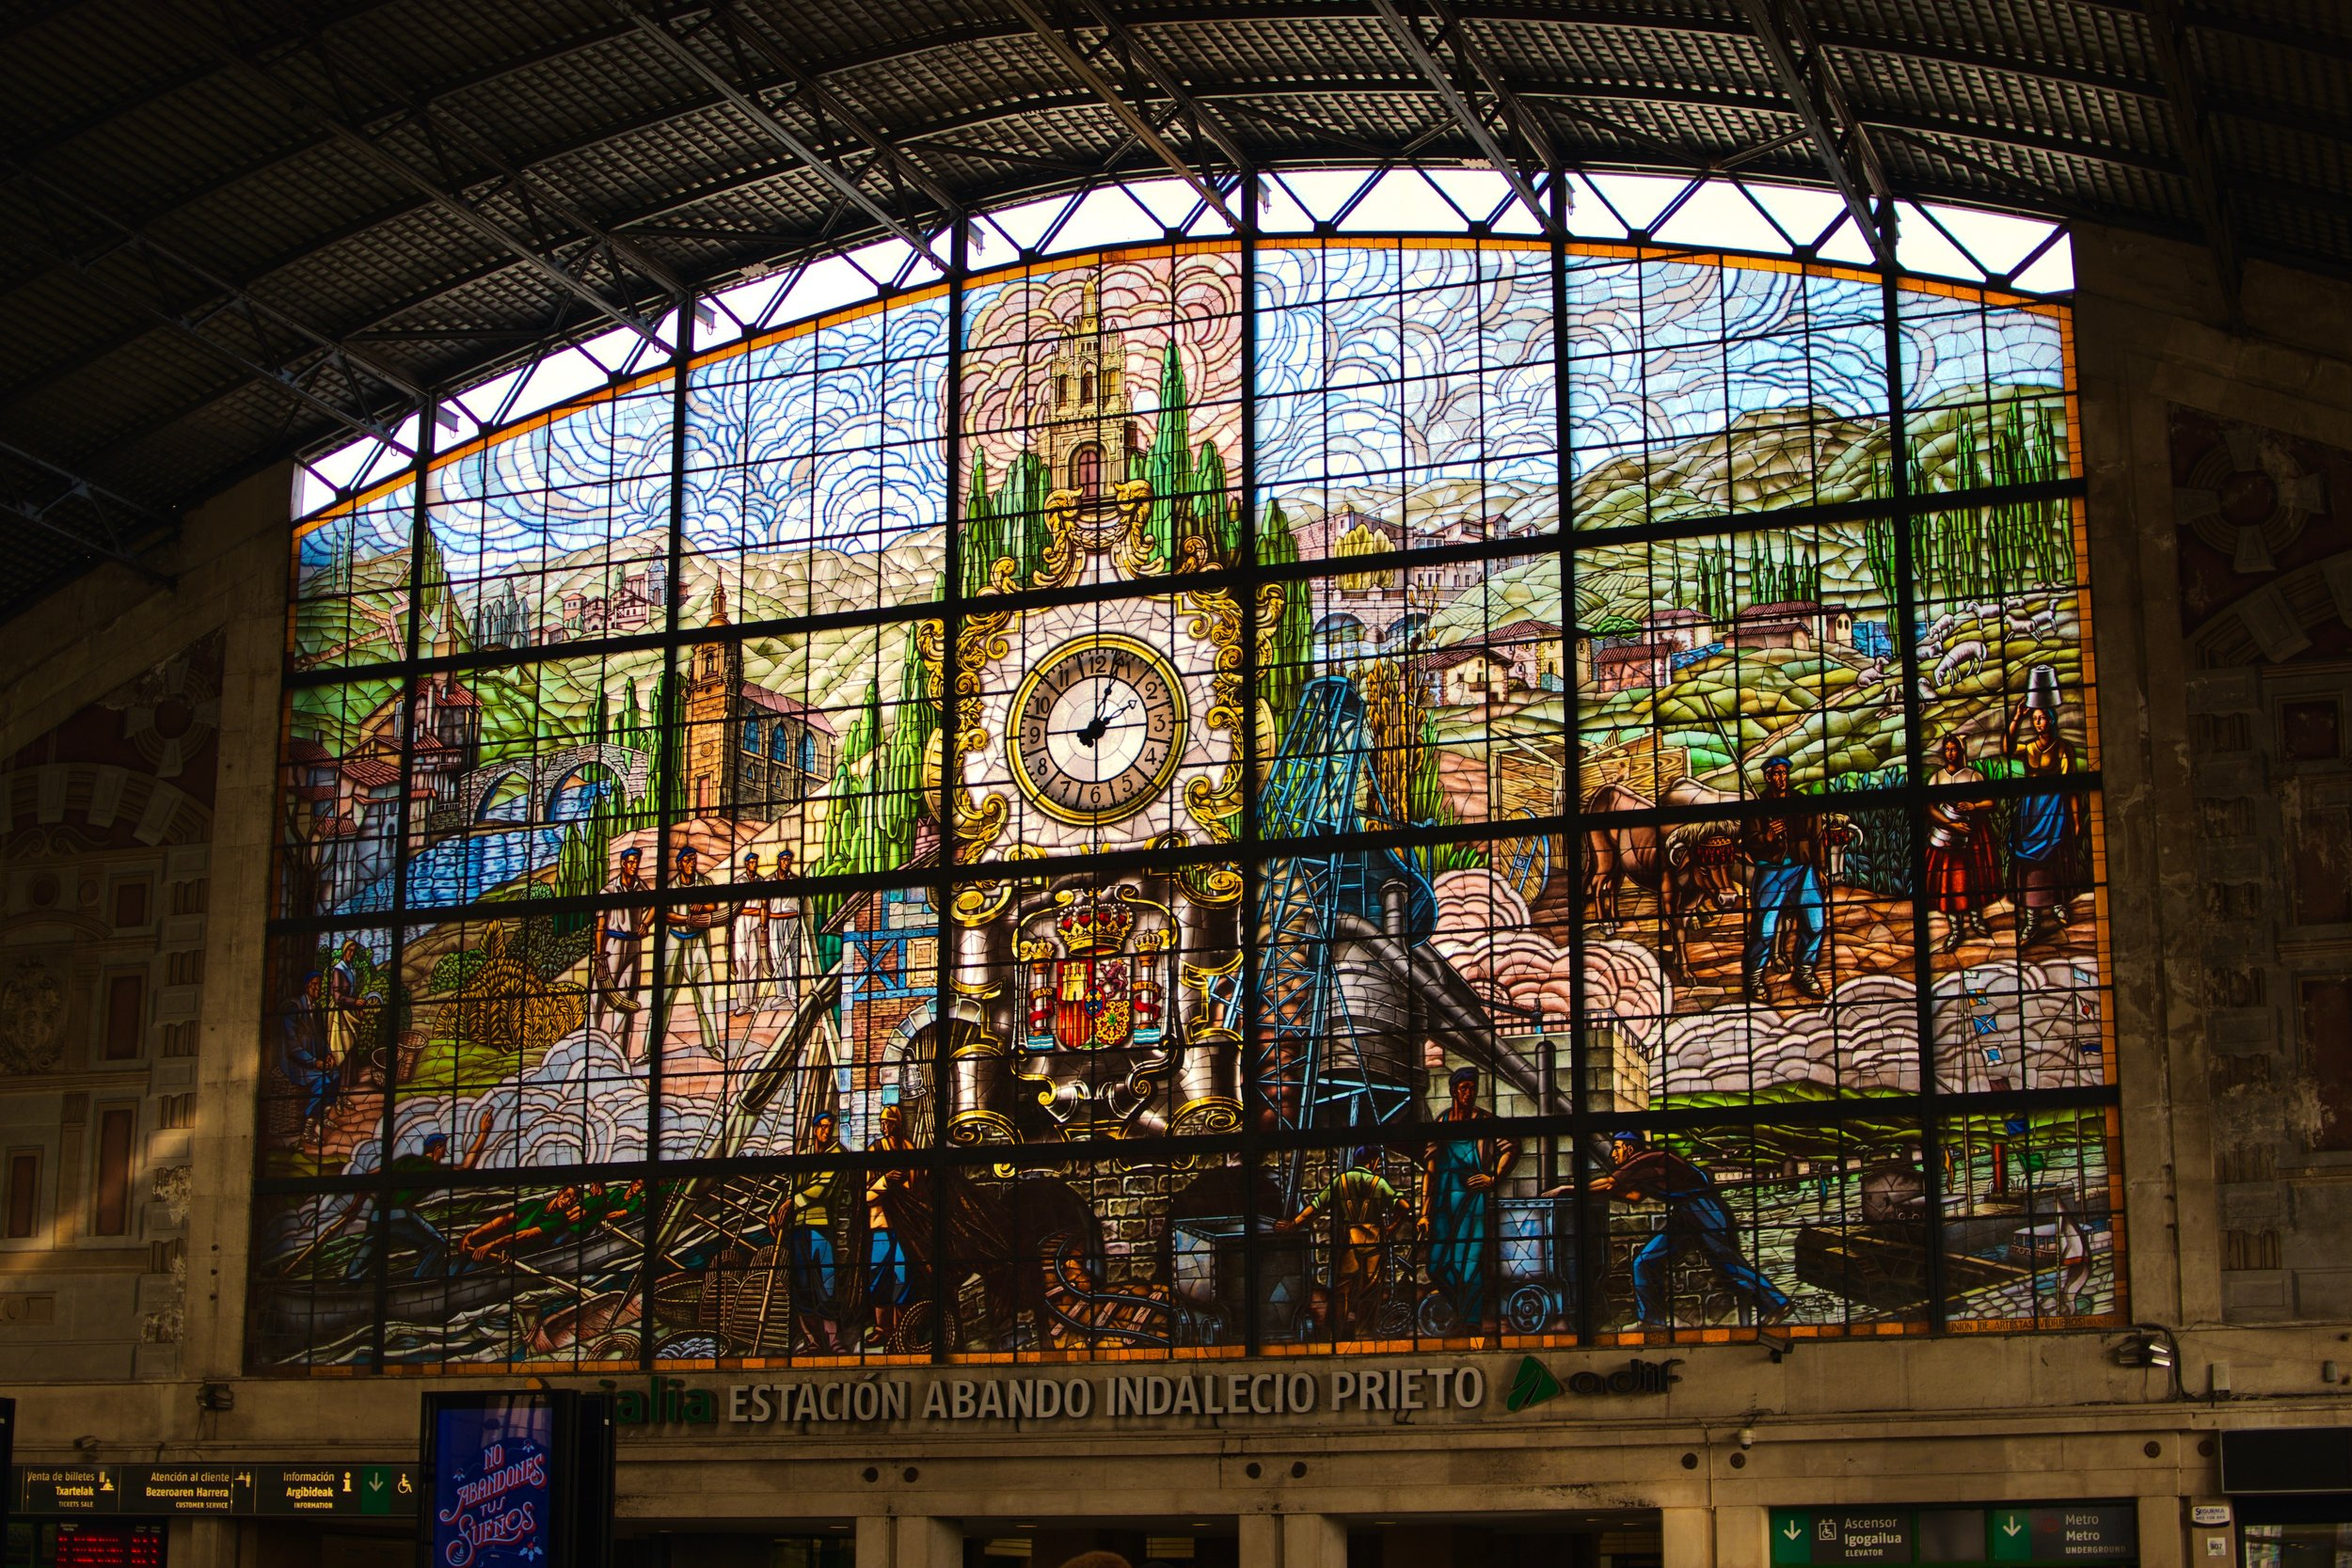 Train Station Bilbao Abando